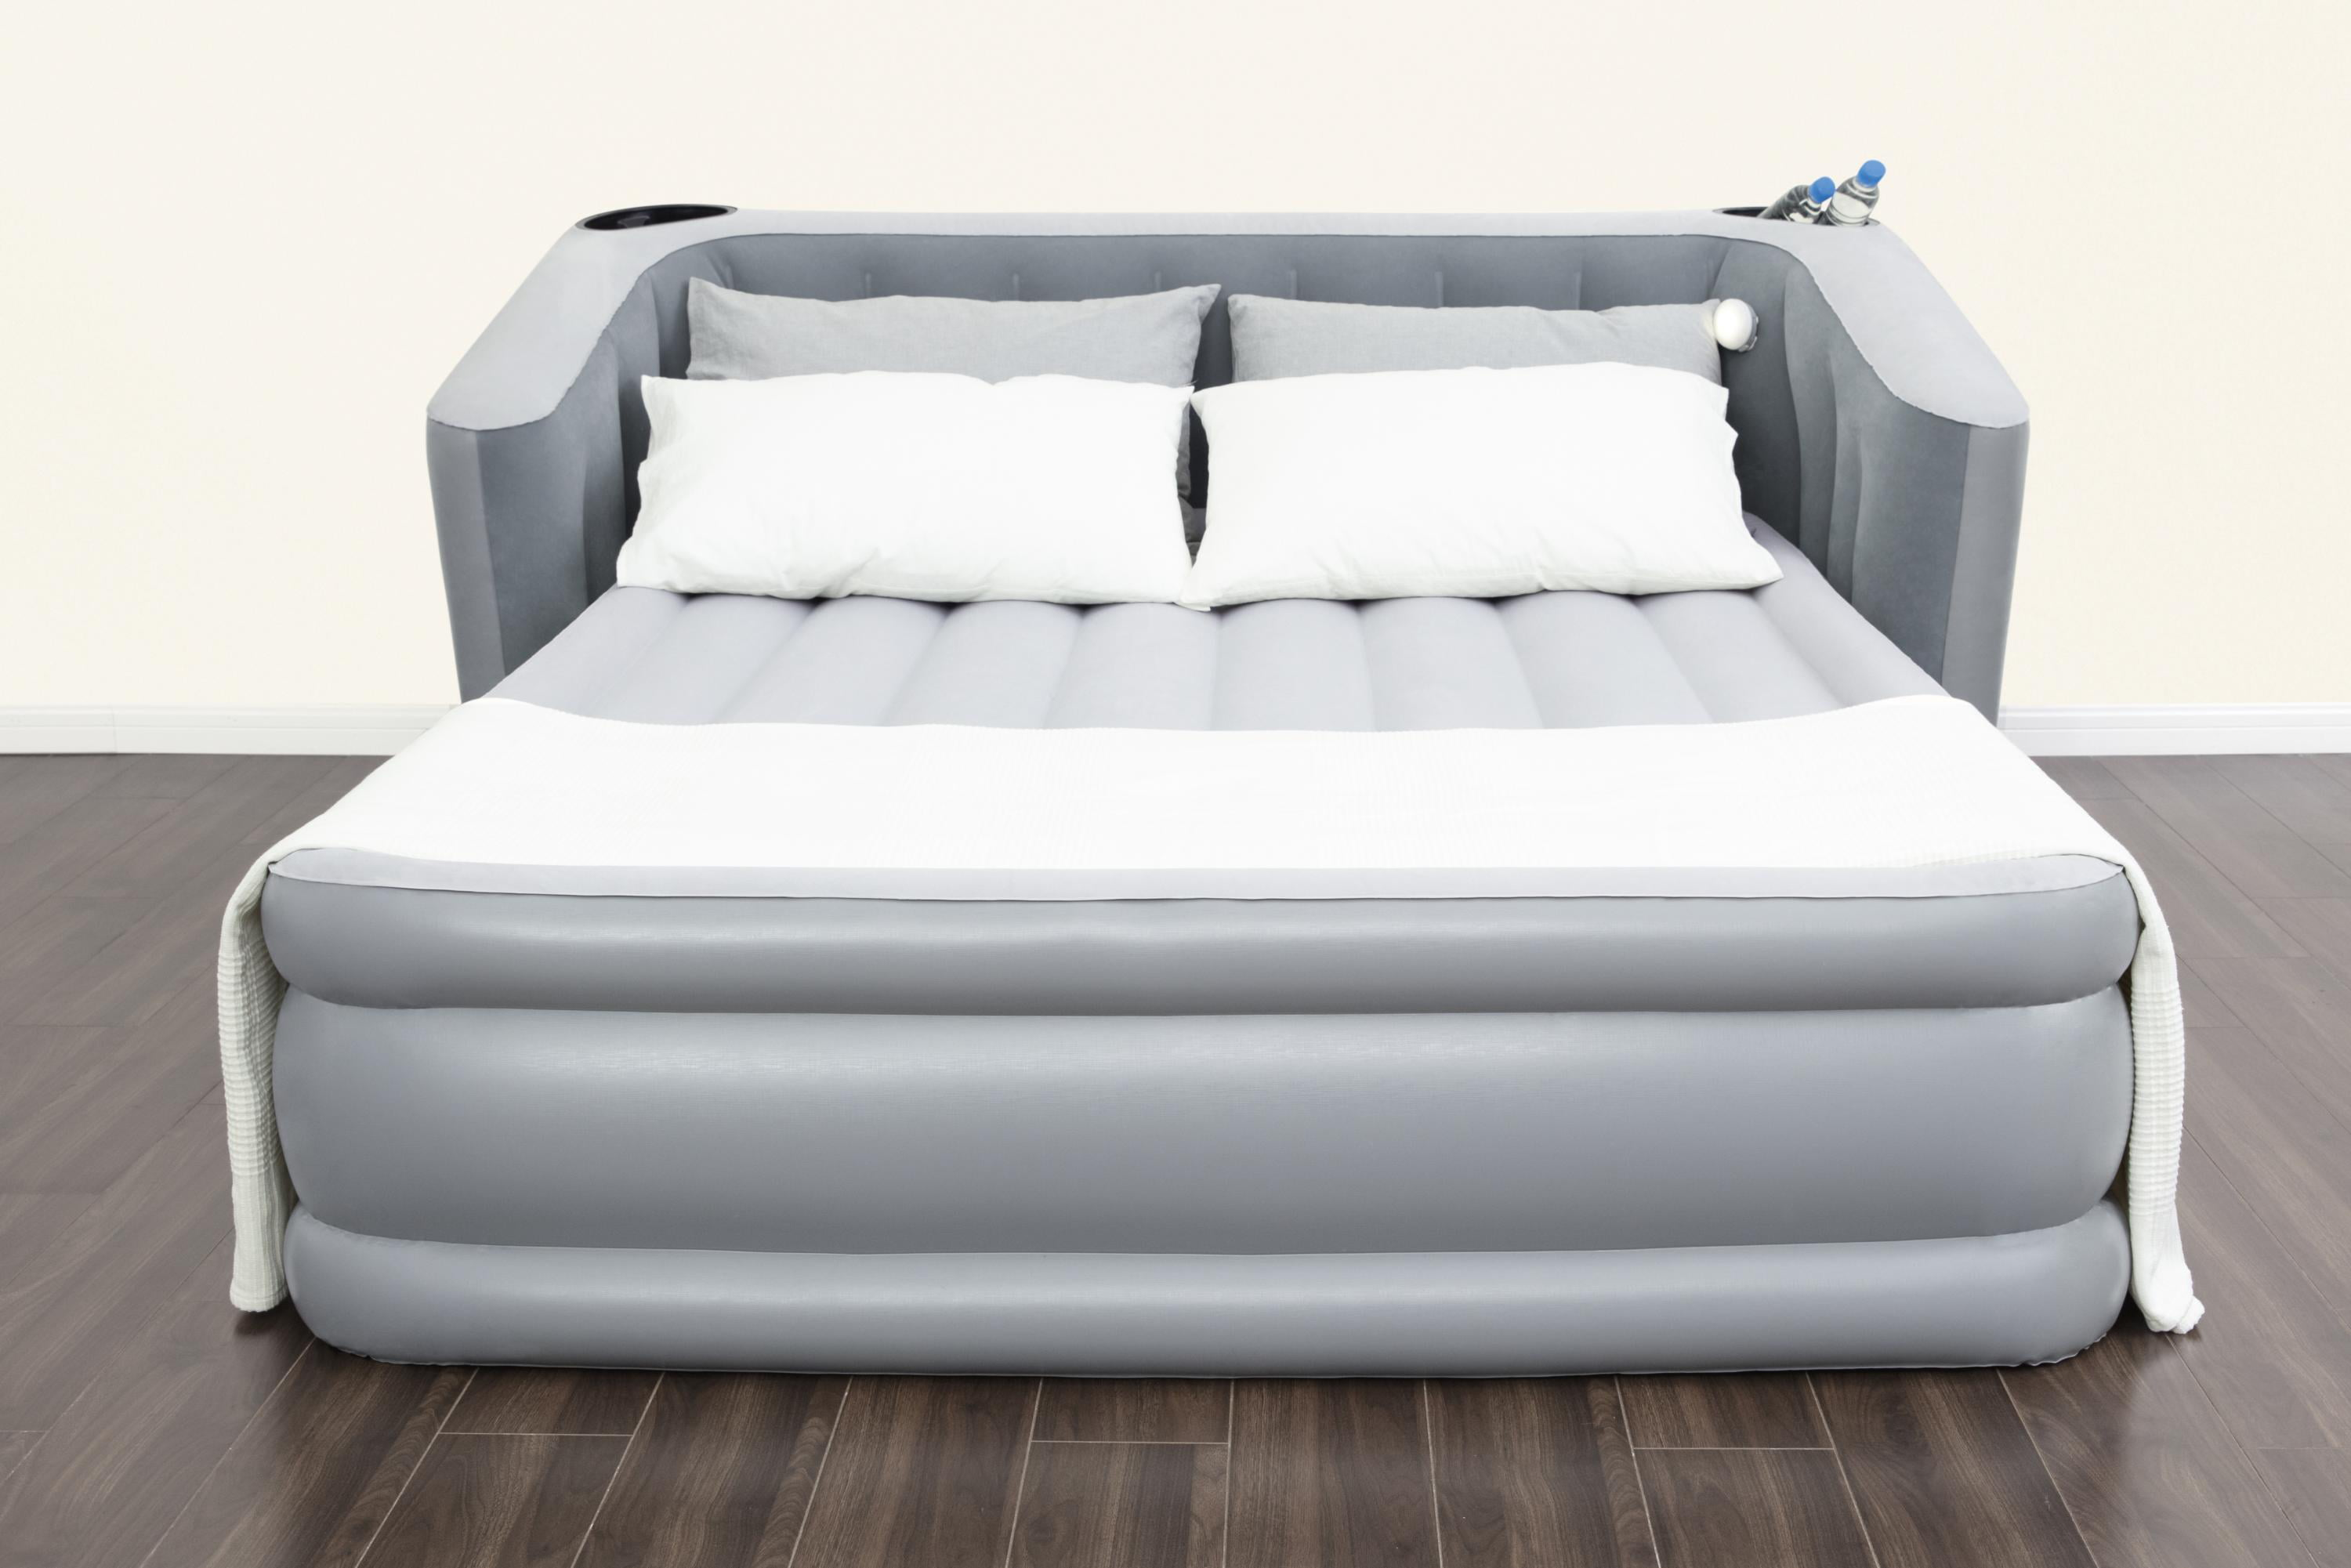 Bestway Queen 31 5 Tritech Wingback Headboard Air Mattress With Built In Ac Pump Walmart Com Walmart Com